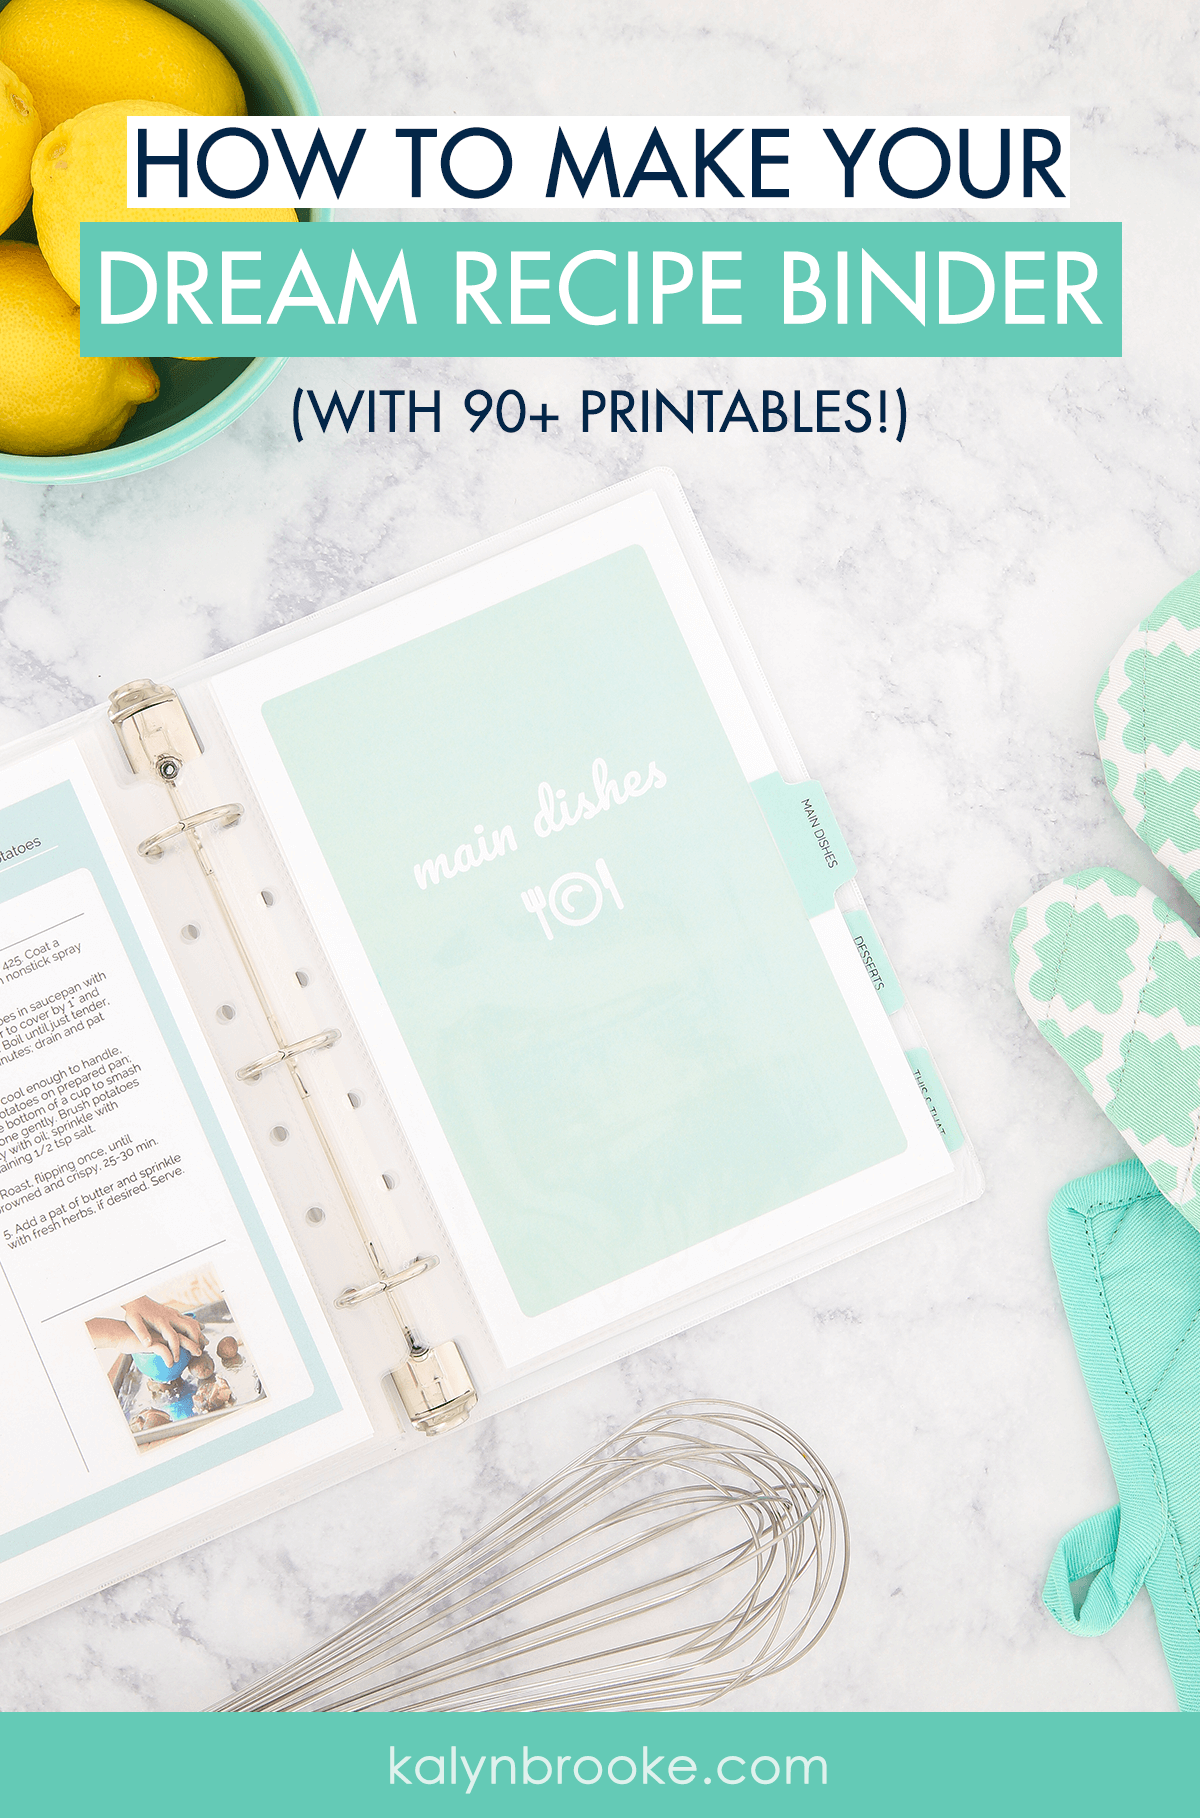 I've known for a long time that I needed to organize my recipes, but just looking at a dozen cookbooks and hundreds of loose papers always made me put it off—I was simply too overwhelmed! Until now. This printable recipe binder kit shows you step-by-step how to declutter, categorize, & organize everything in a more efficient way. My favorite recipes are all located in one easy-to-use notebook, and I don't dread meal planning anymore! #organizedrecipes #recipecollection #recipebook #recipebinder